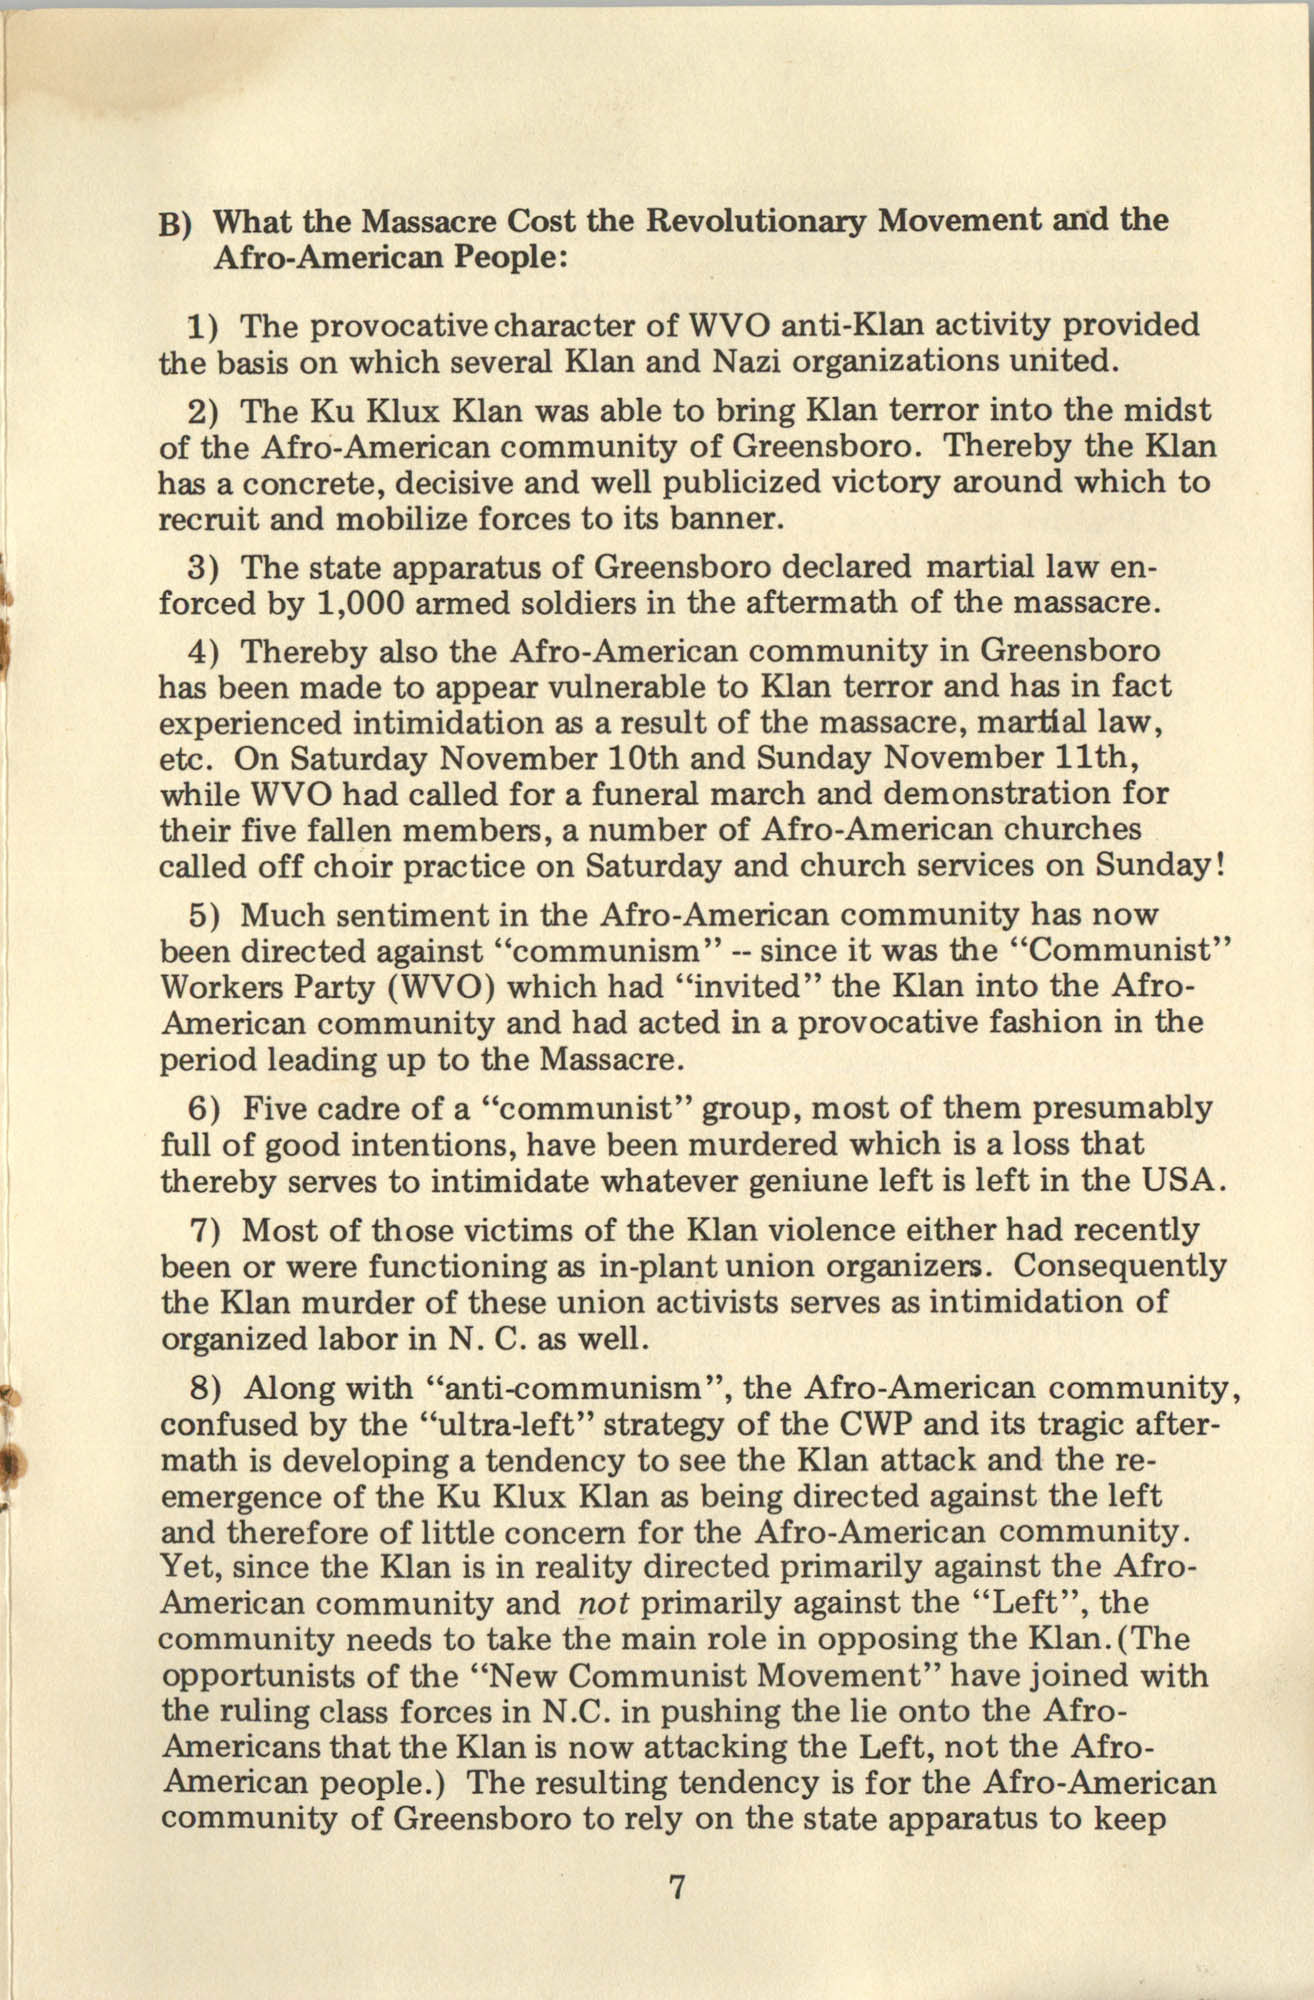 Ray O. Light Newsletter, Volume 1, Number 4, Page 7